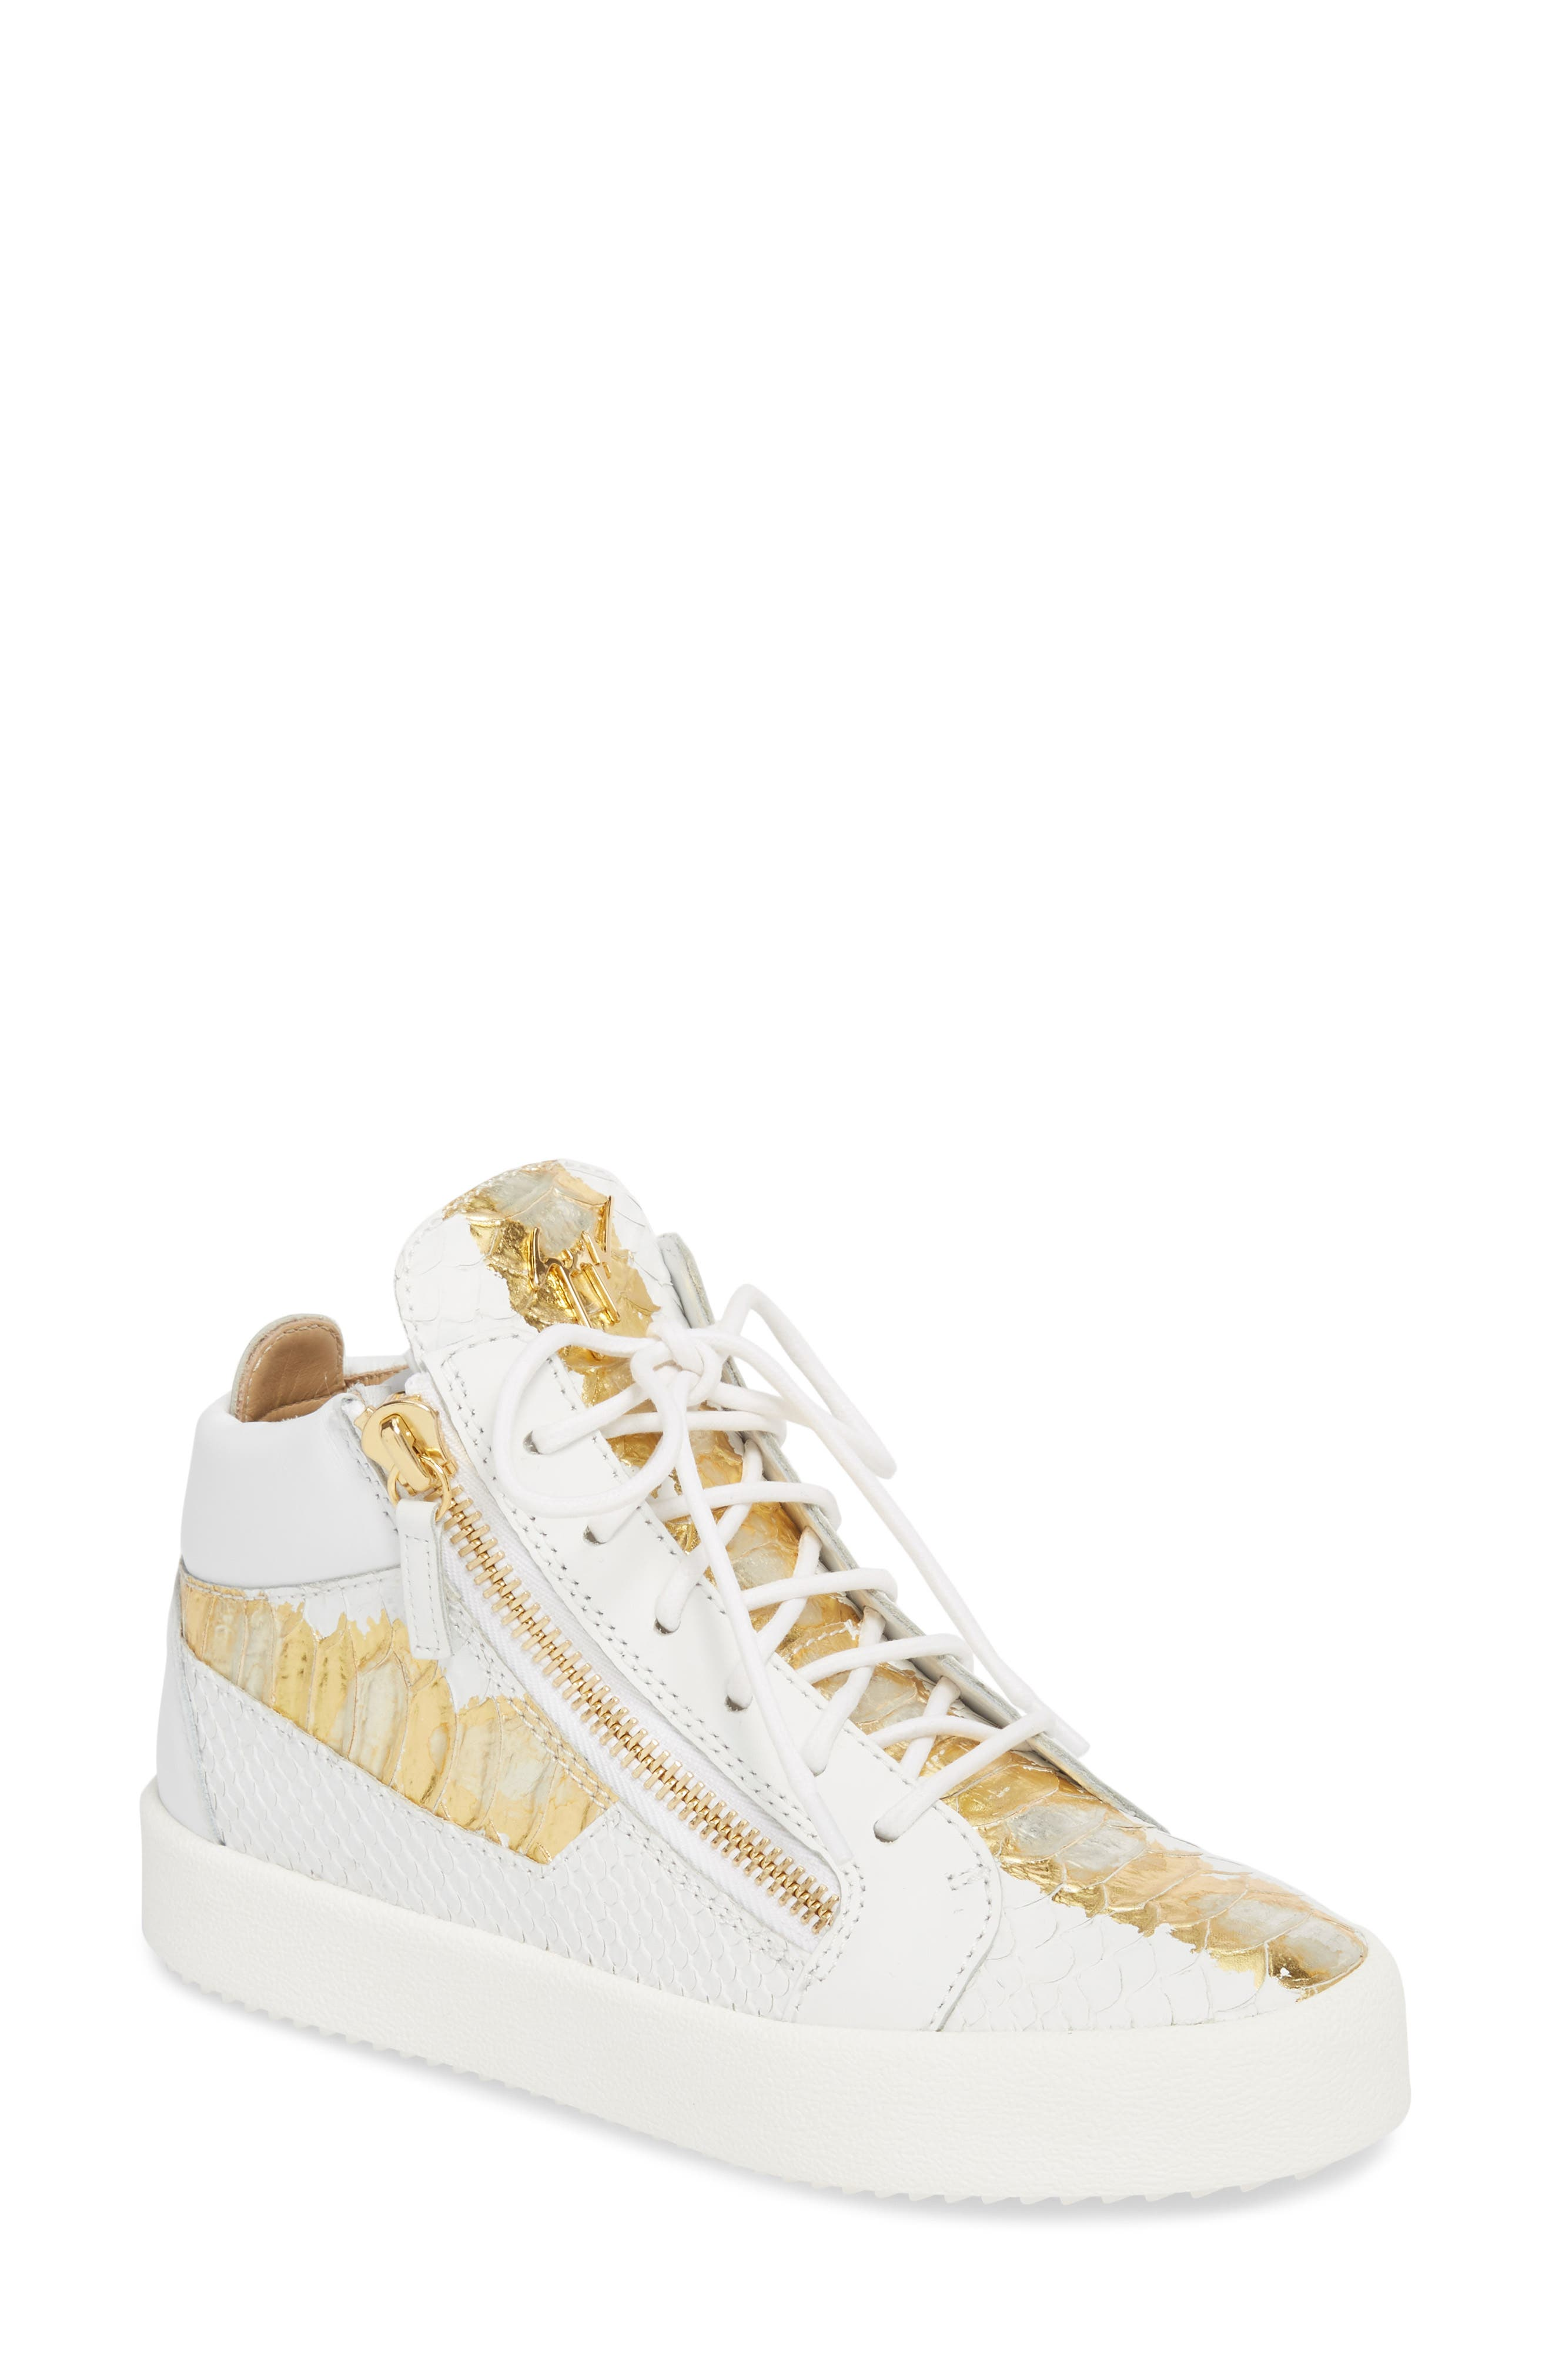 May London Mid Top Sneaker, Main, color, WHITE/NEON YELLOW